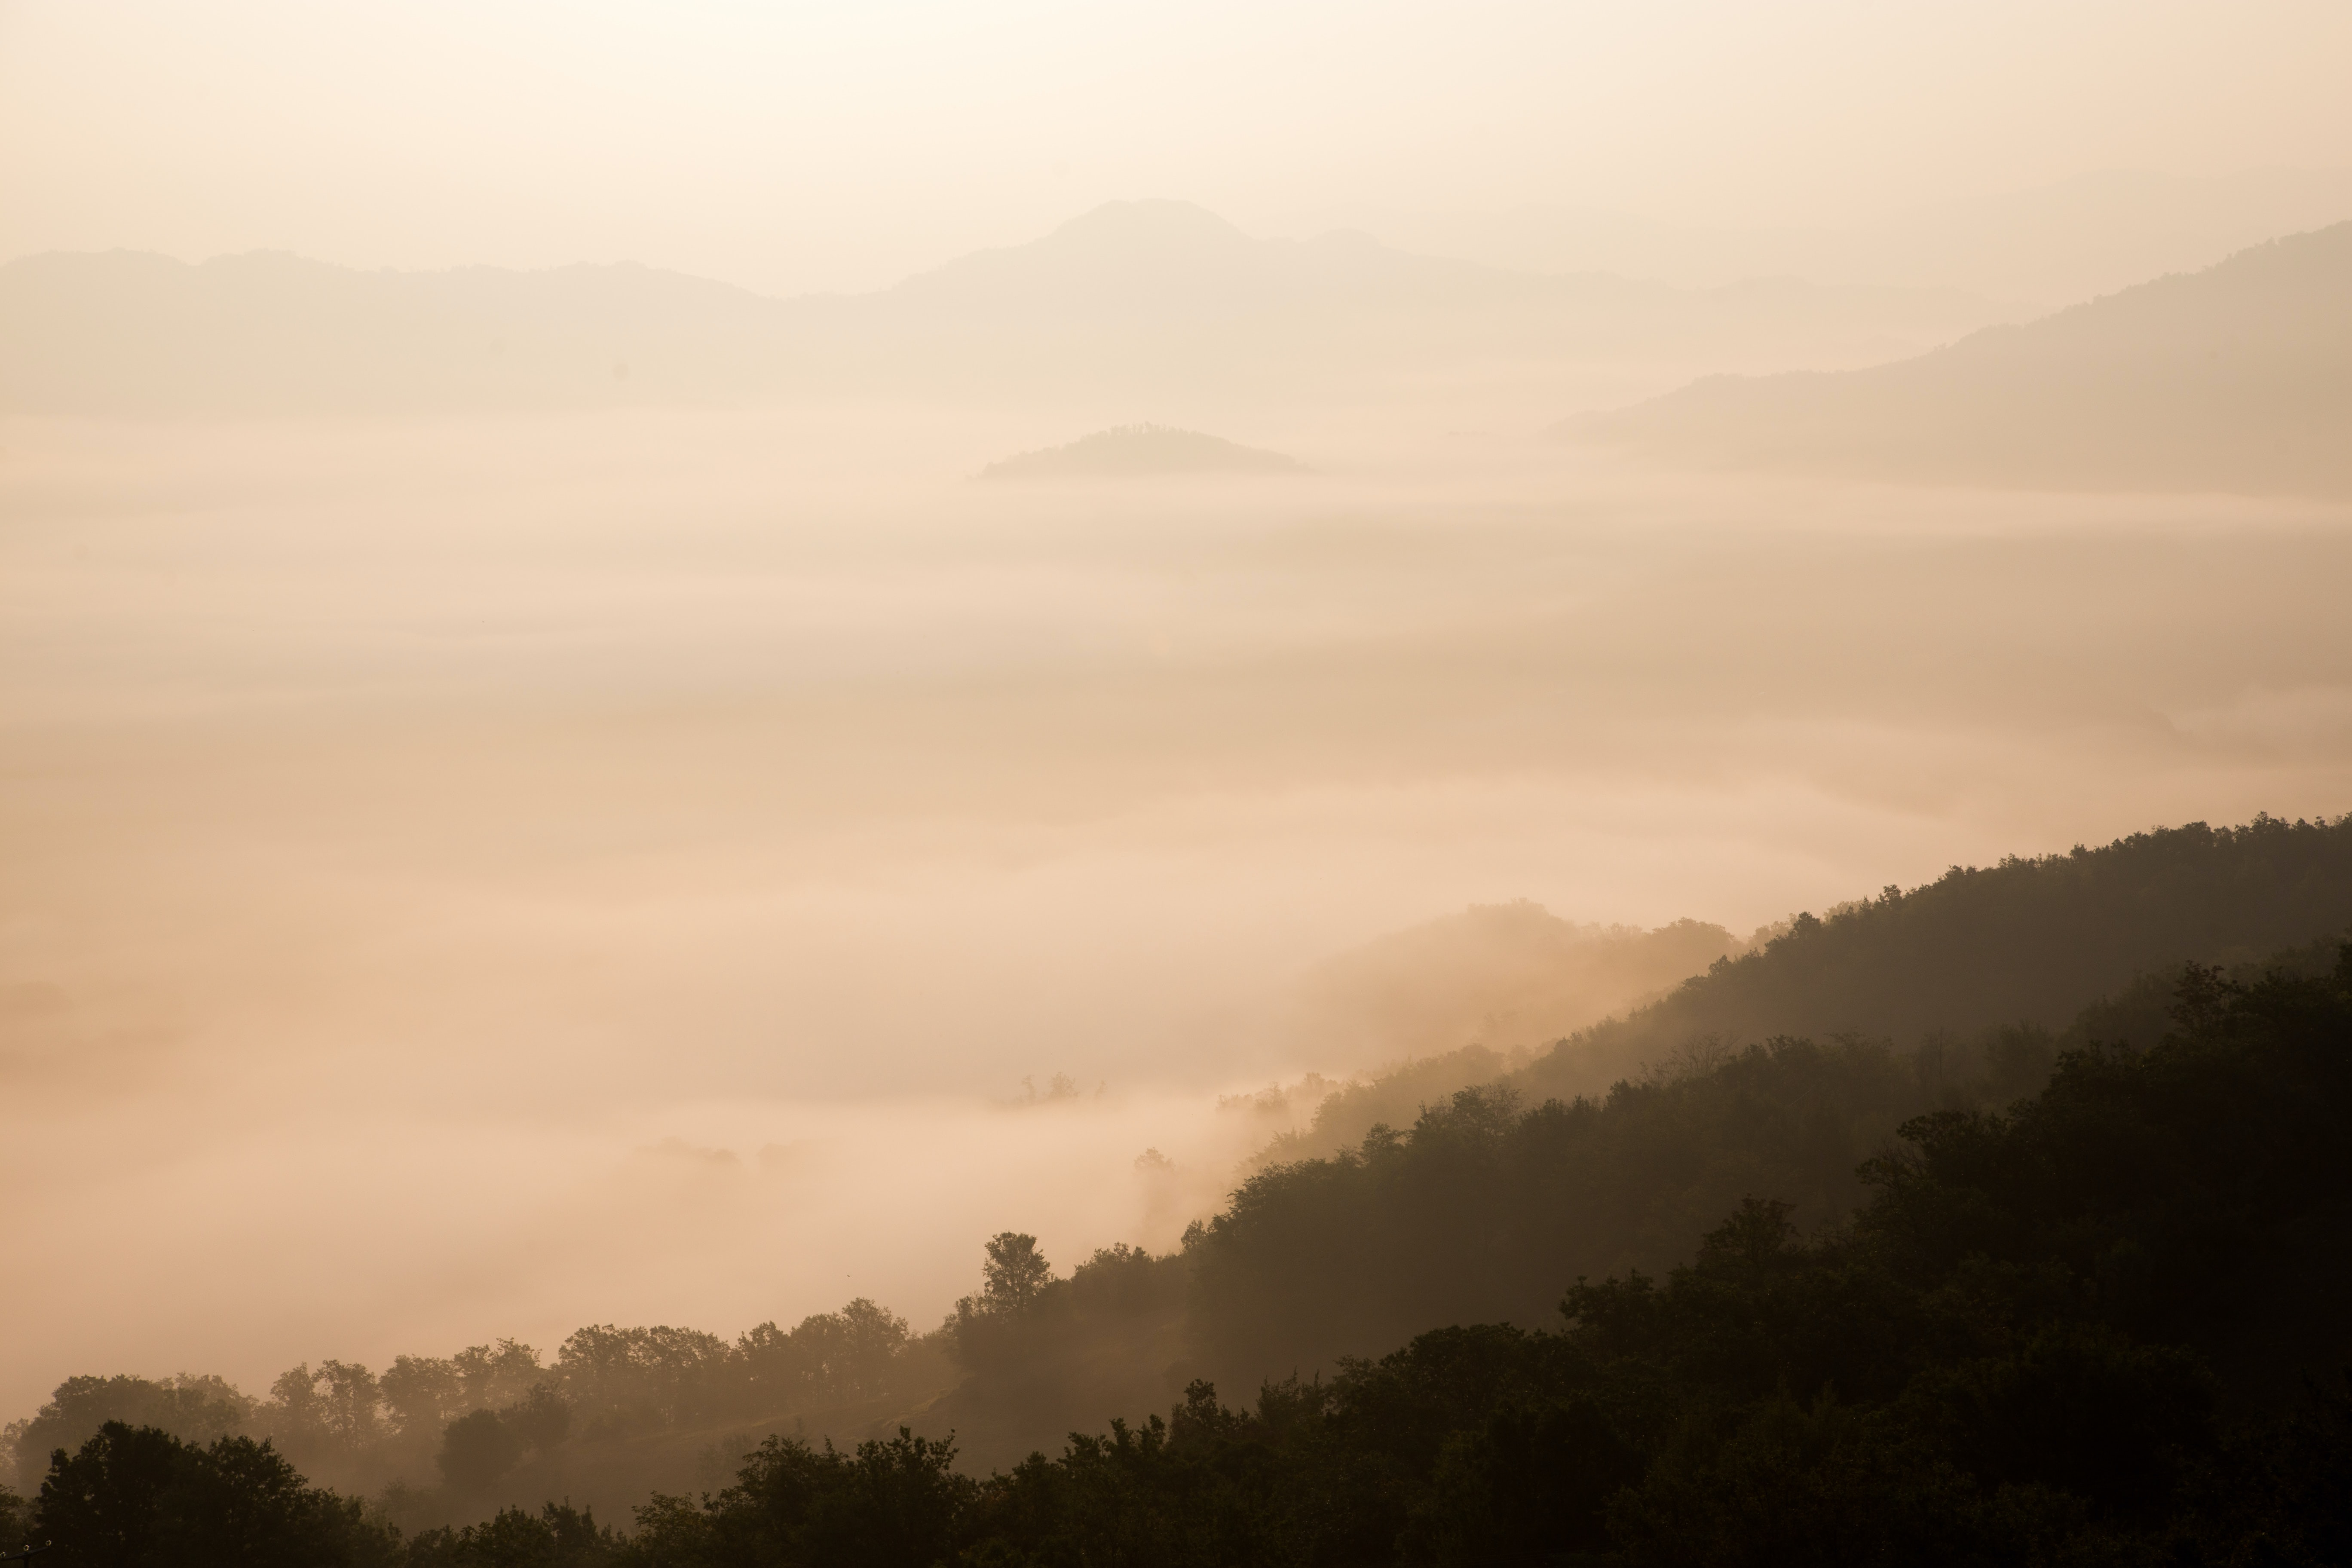 A deep mountain valley covered with a thick layer of fog